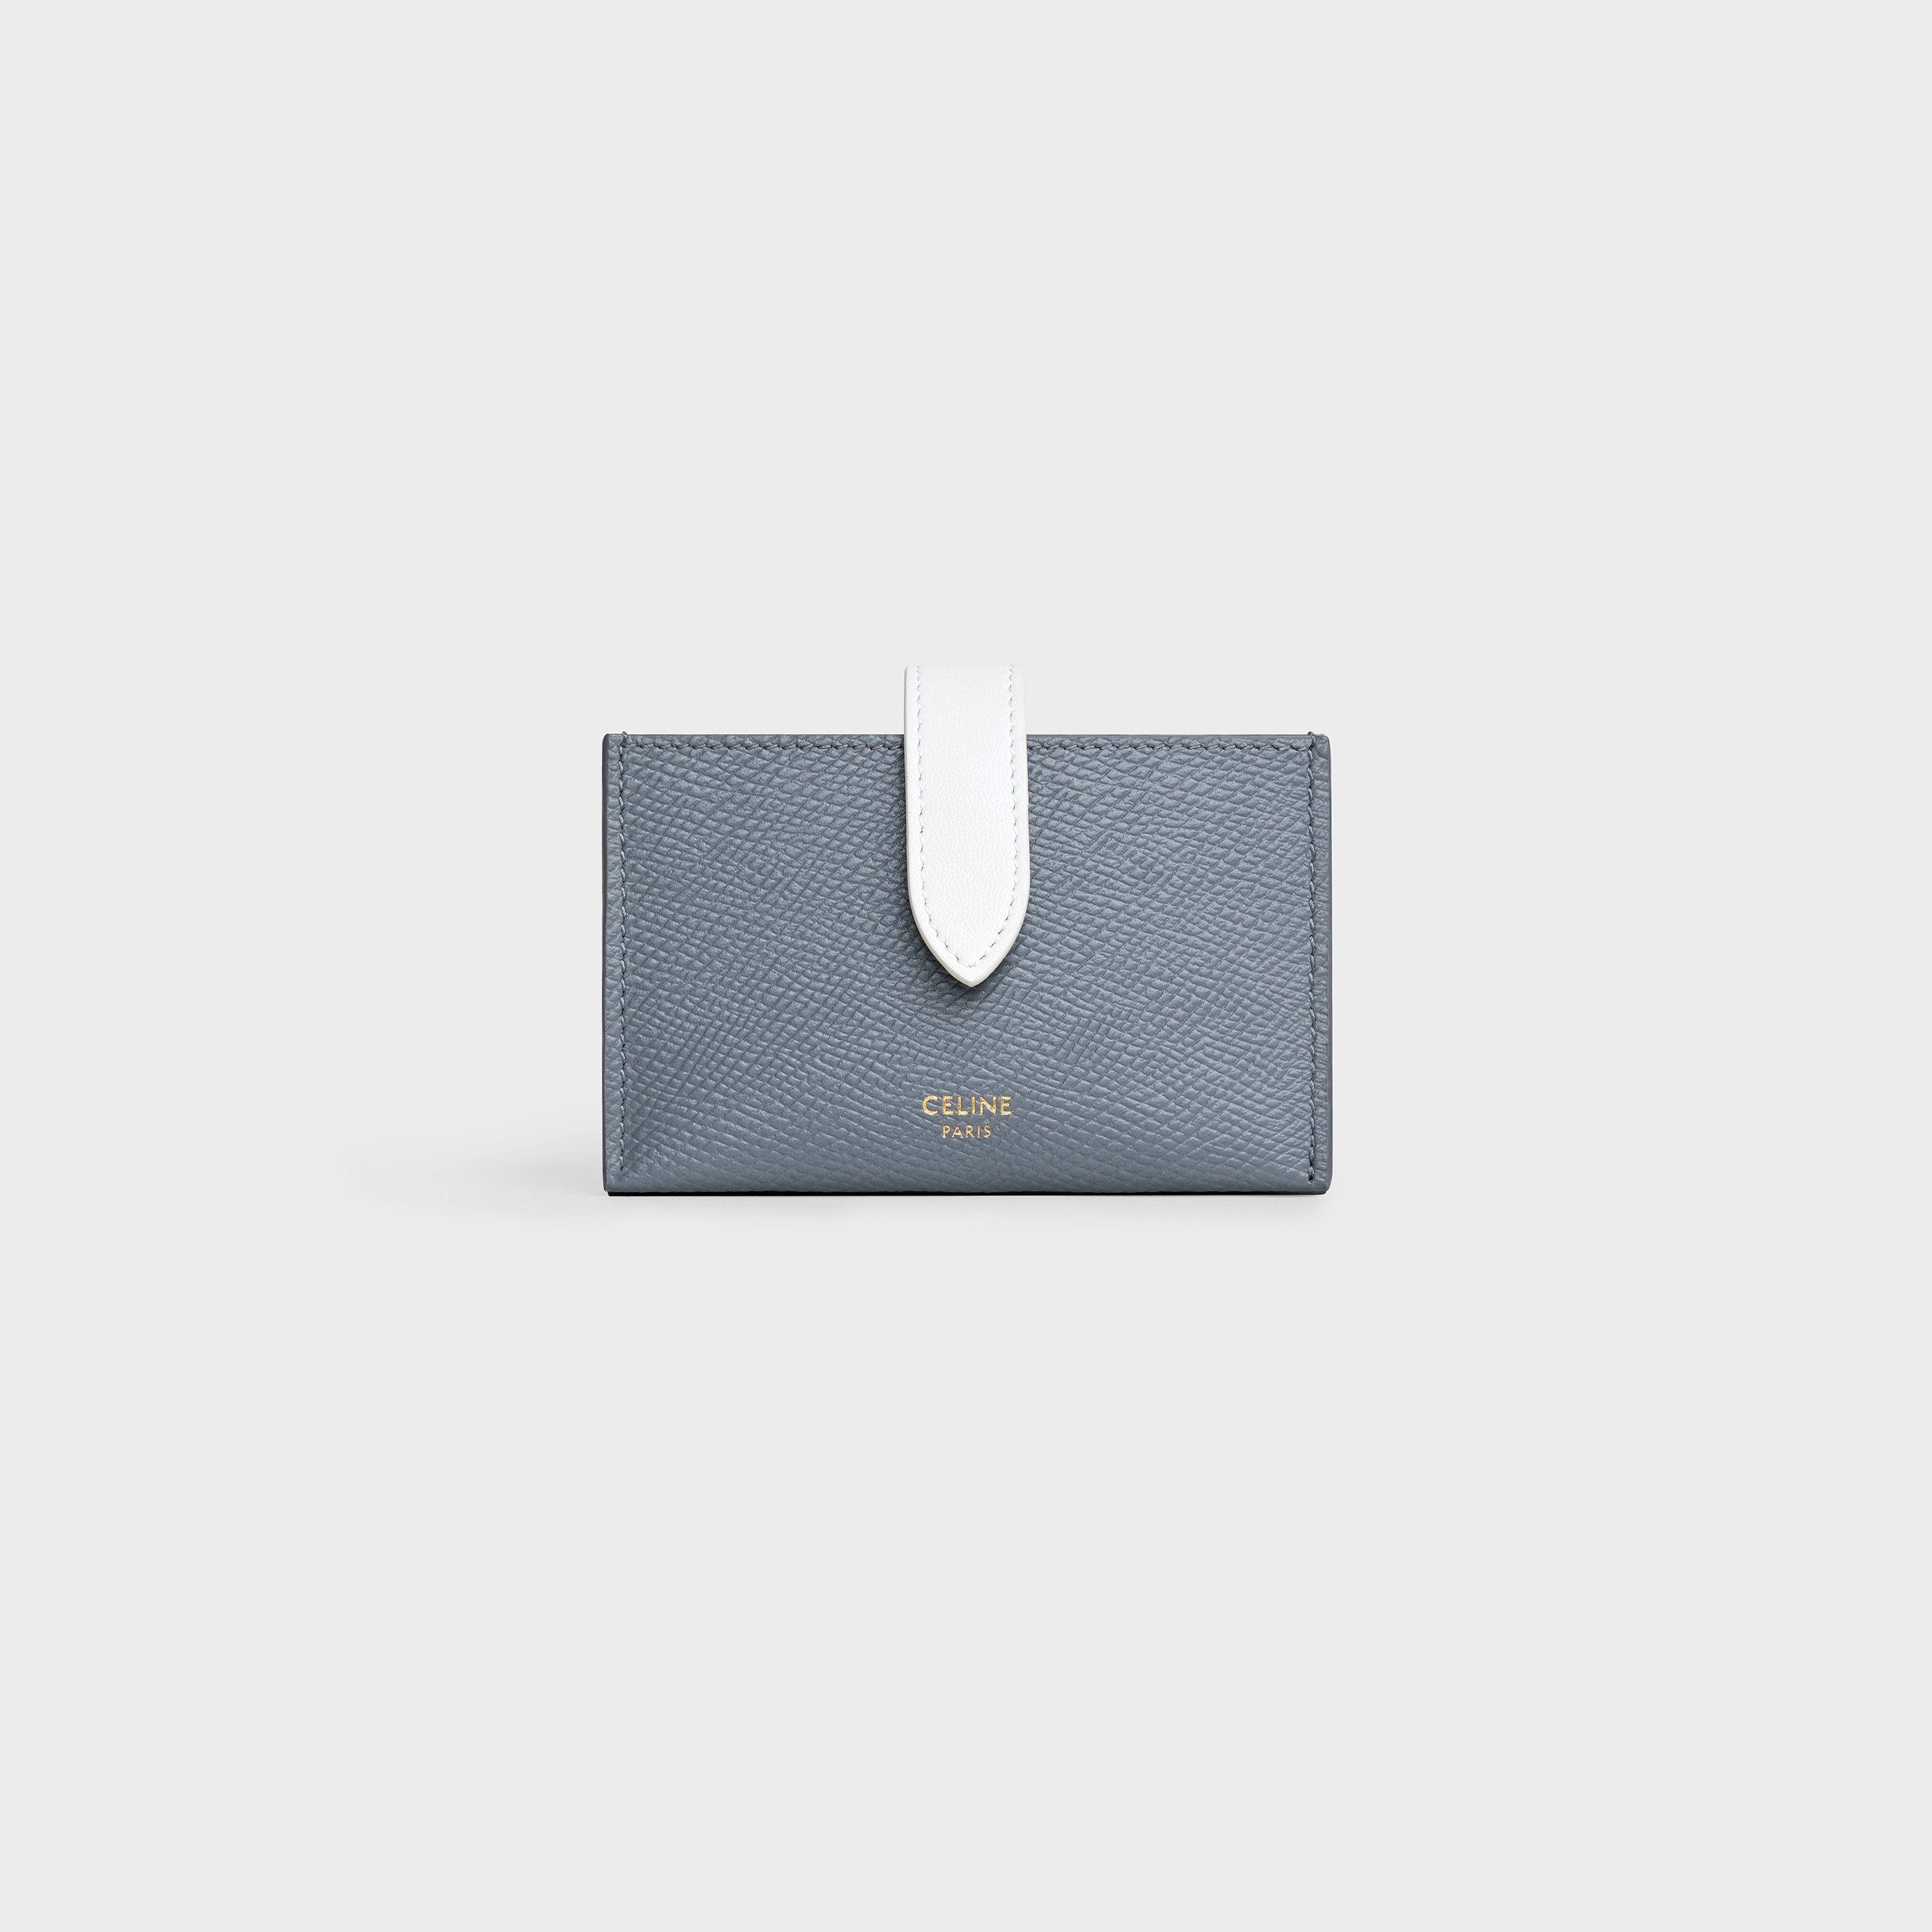 Bicolour Accordeon card holder in grained calfskin - Medium Grey / White